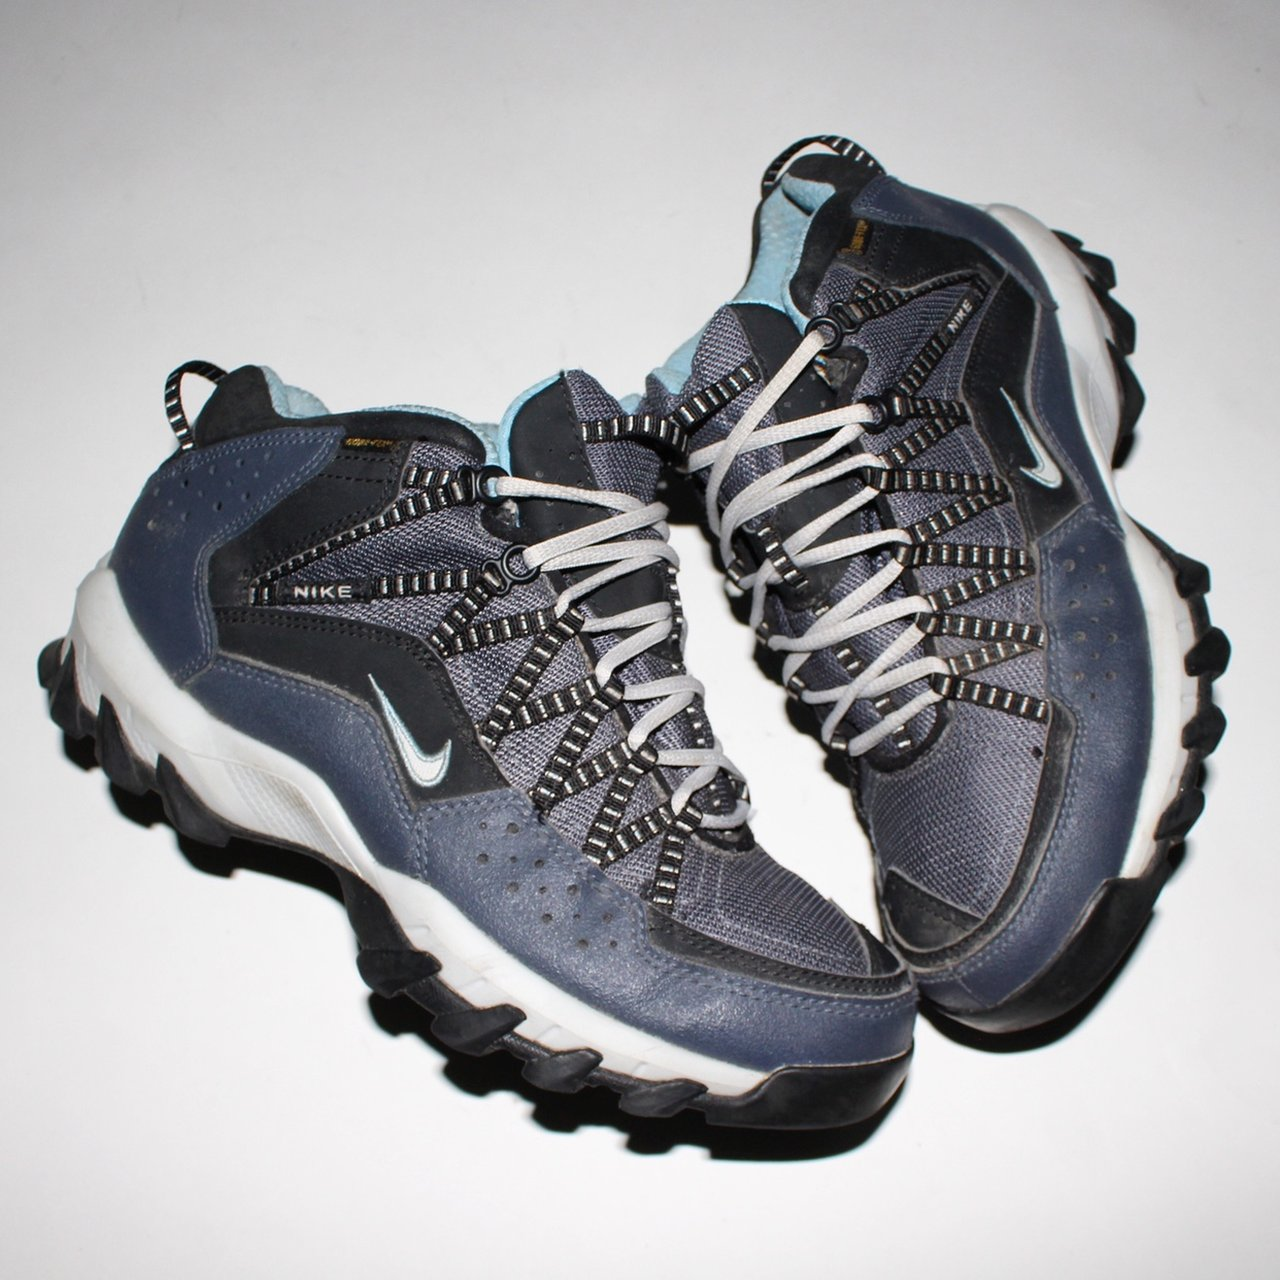 Mens Nike Acg All Trac Boots For Women Shoes  325af923d